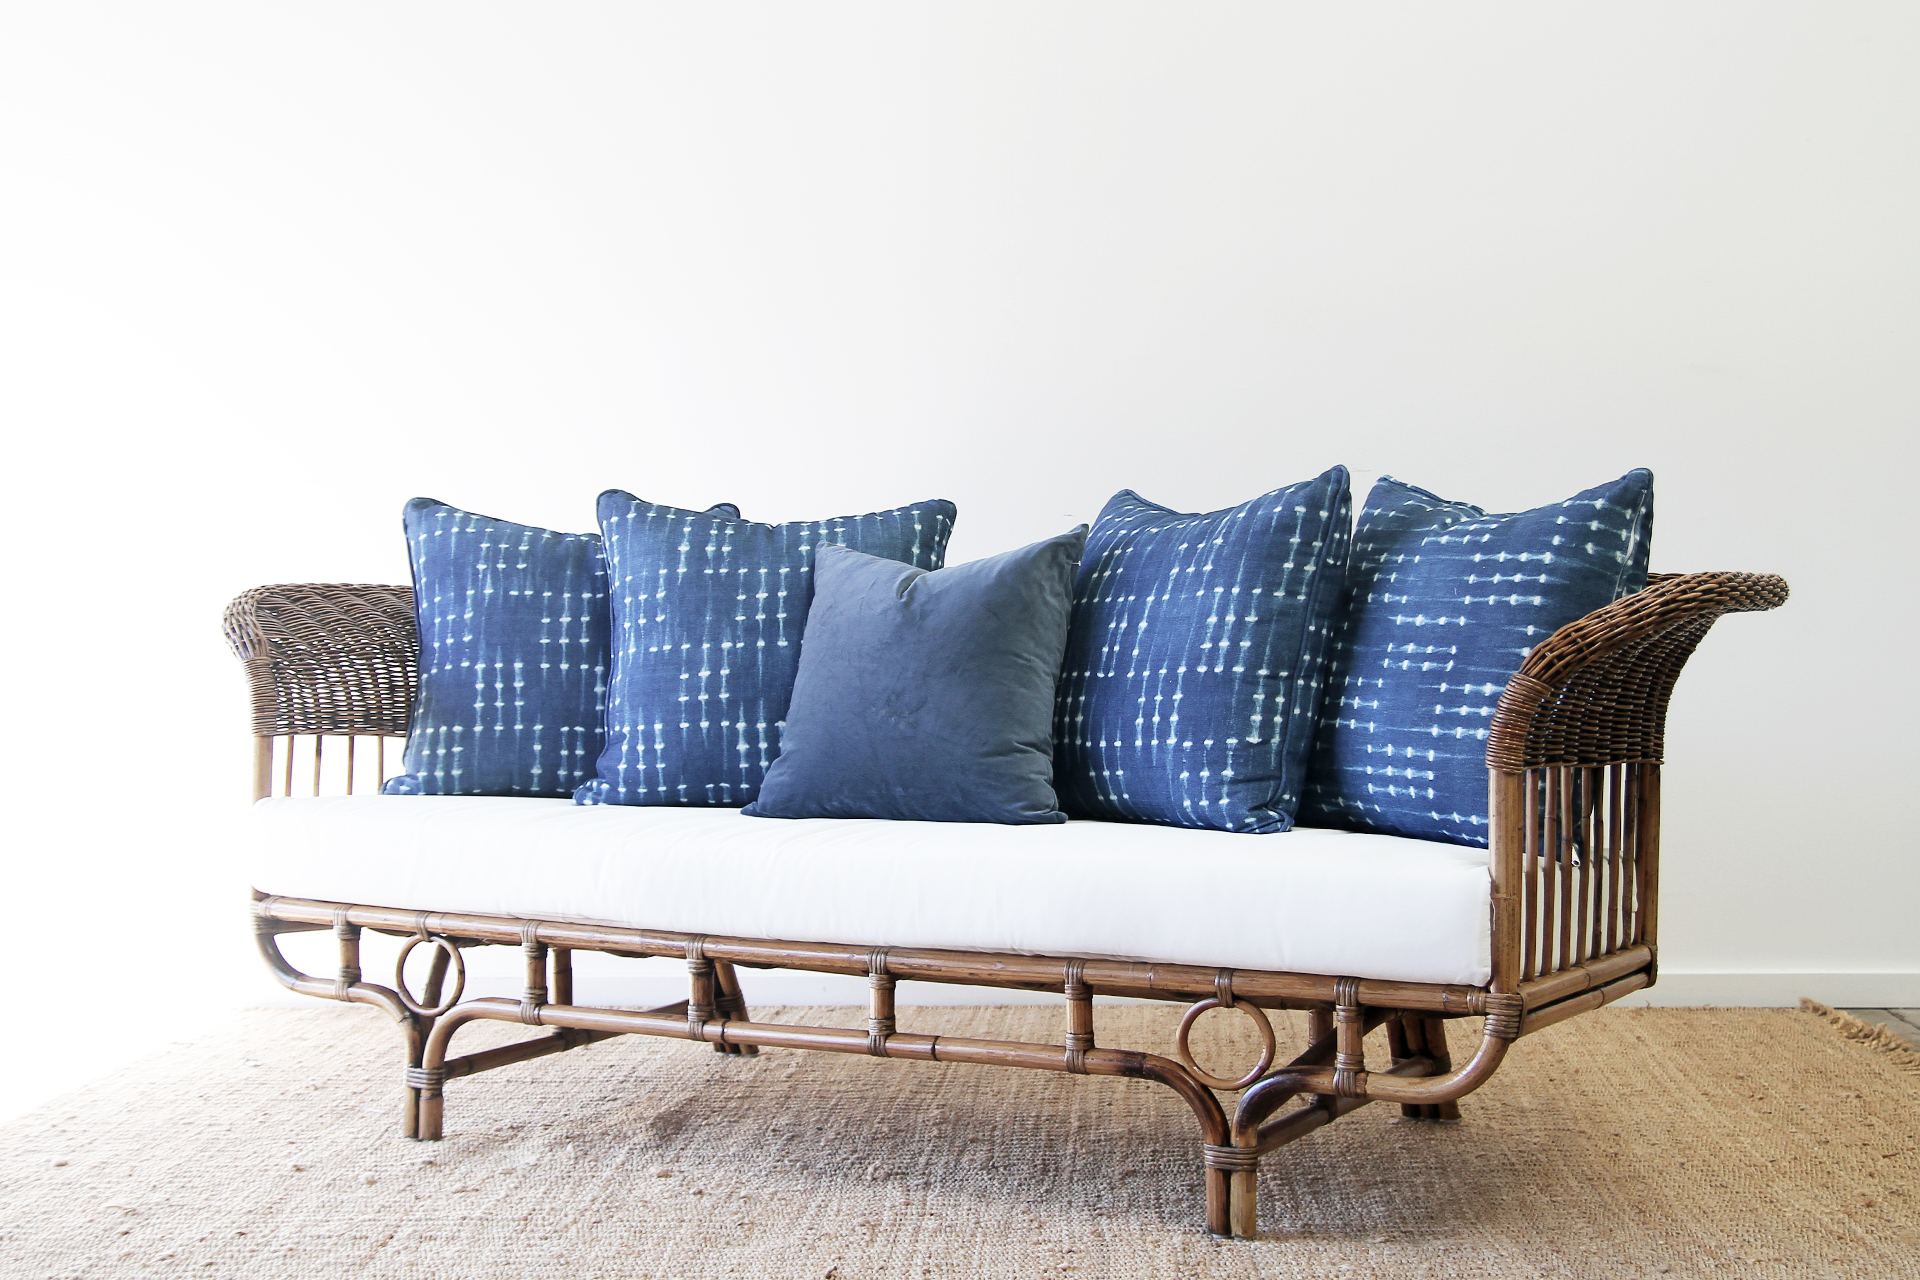 Bower Daybed  Naturally Cane Rattan and Wicker Furniture